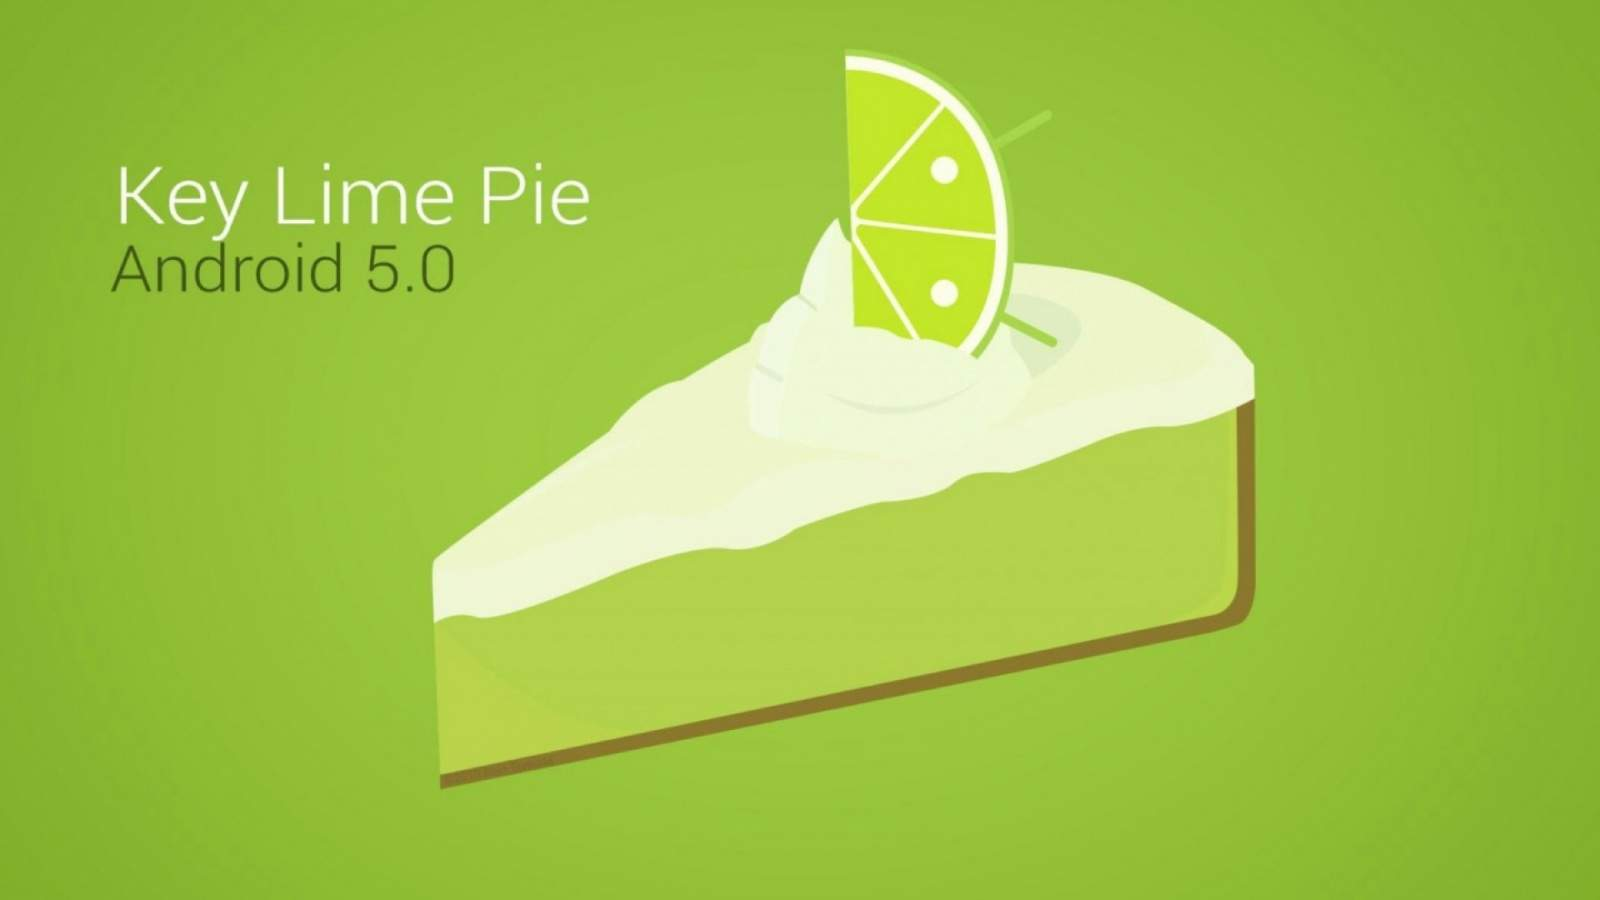 cult of android - daily wallpaper: key lime pie, in anticipation of